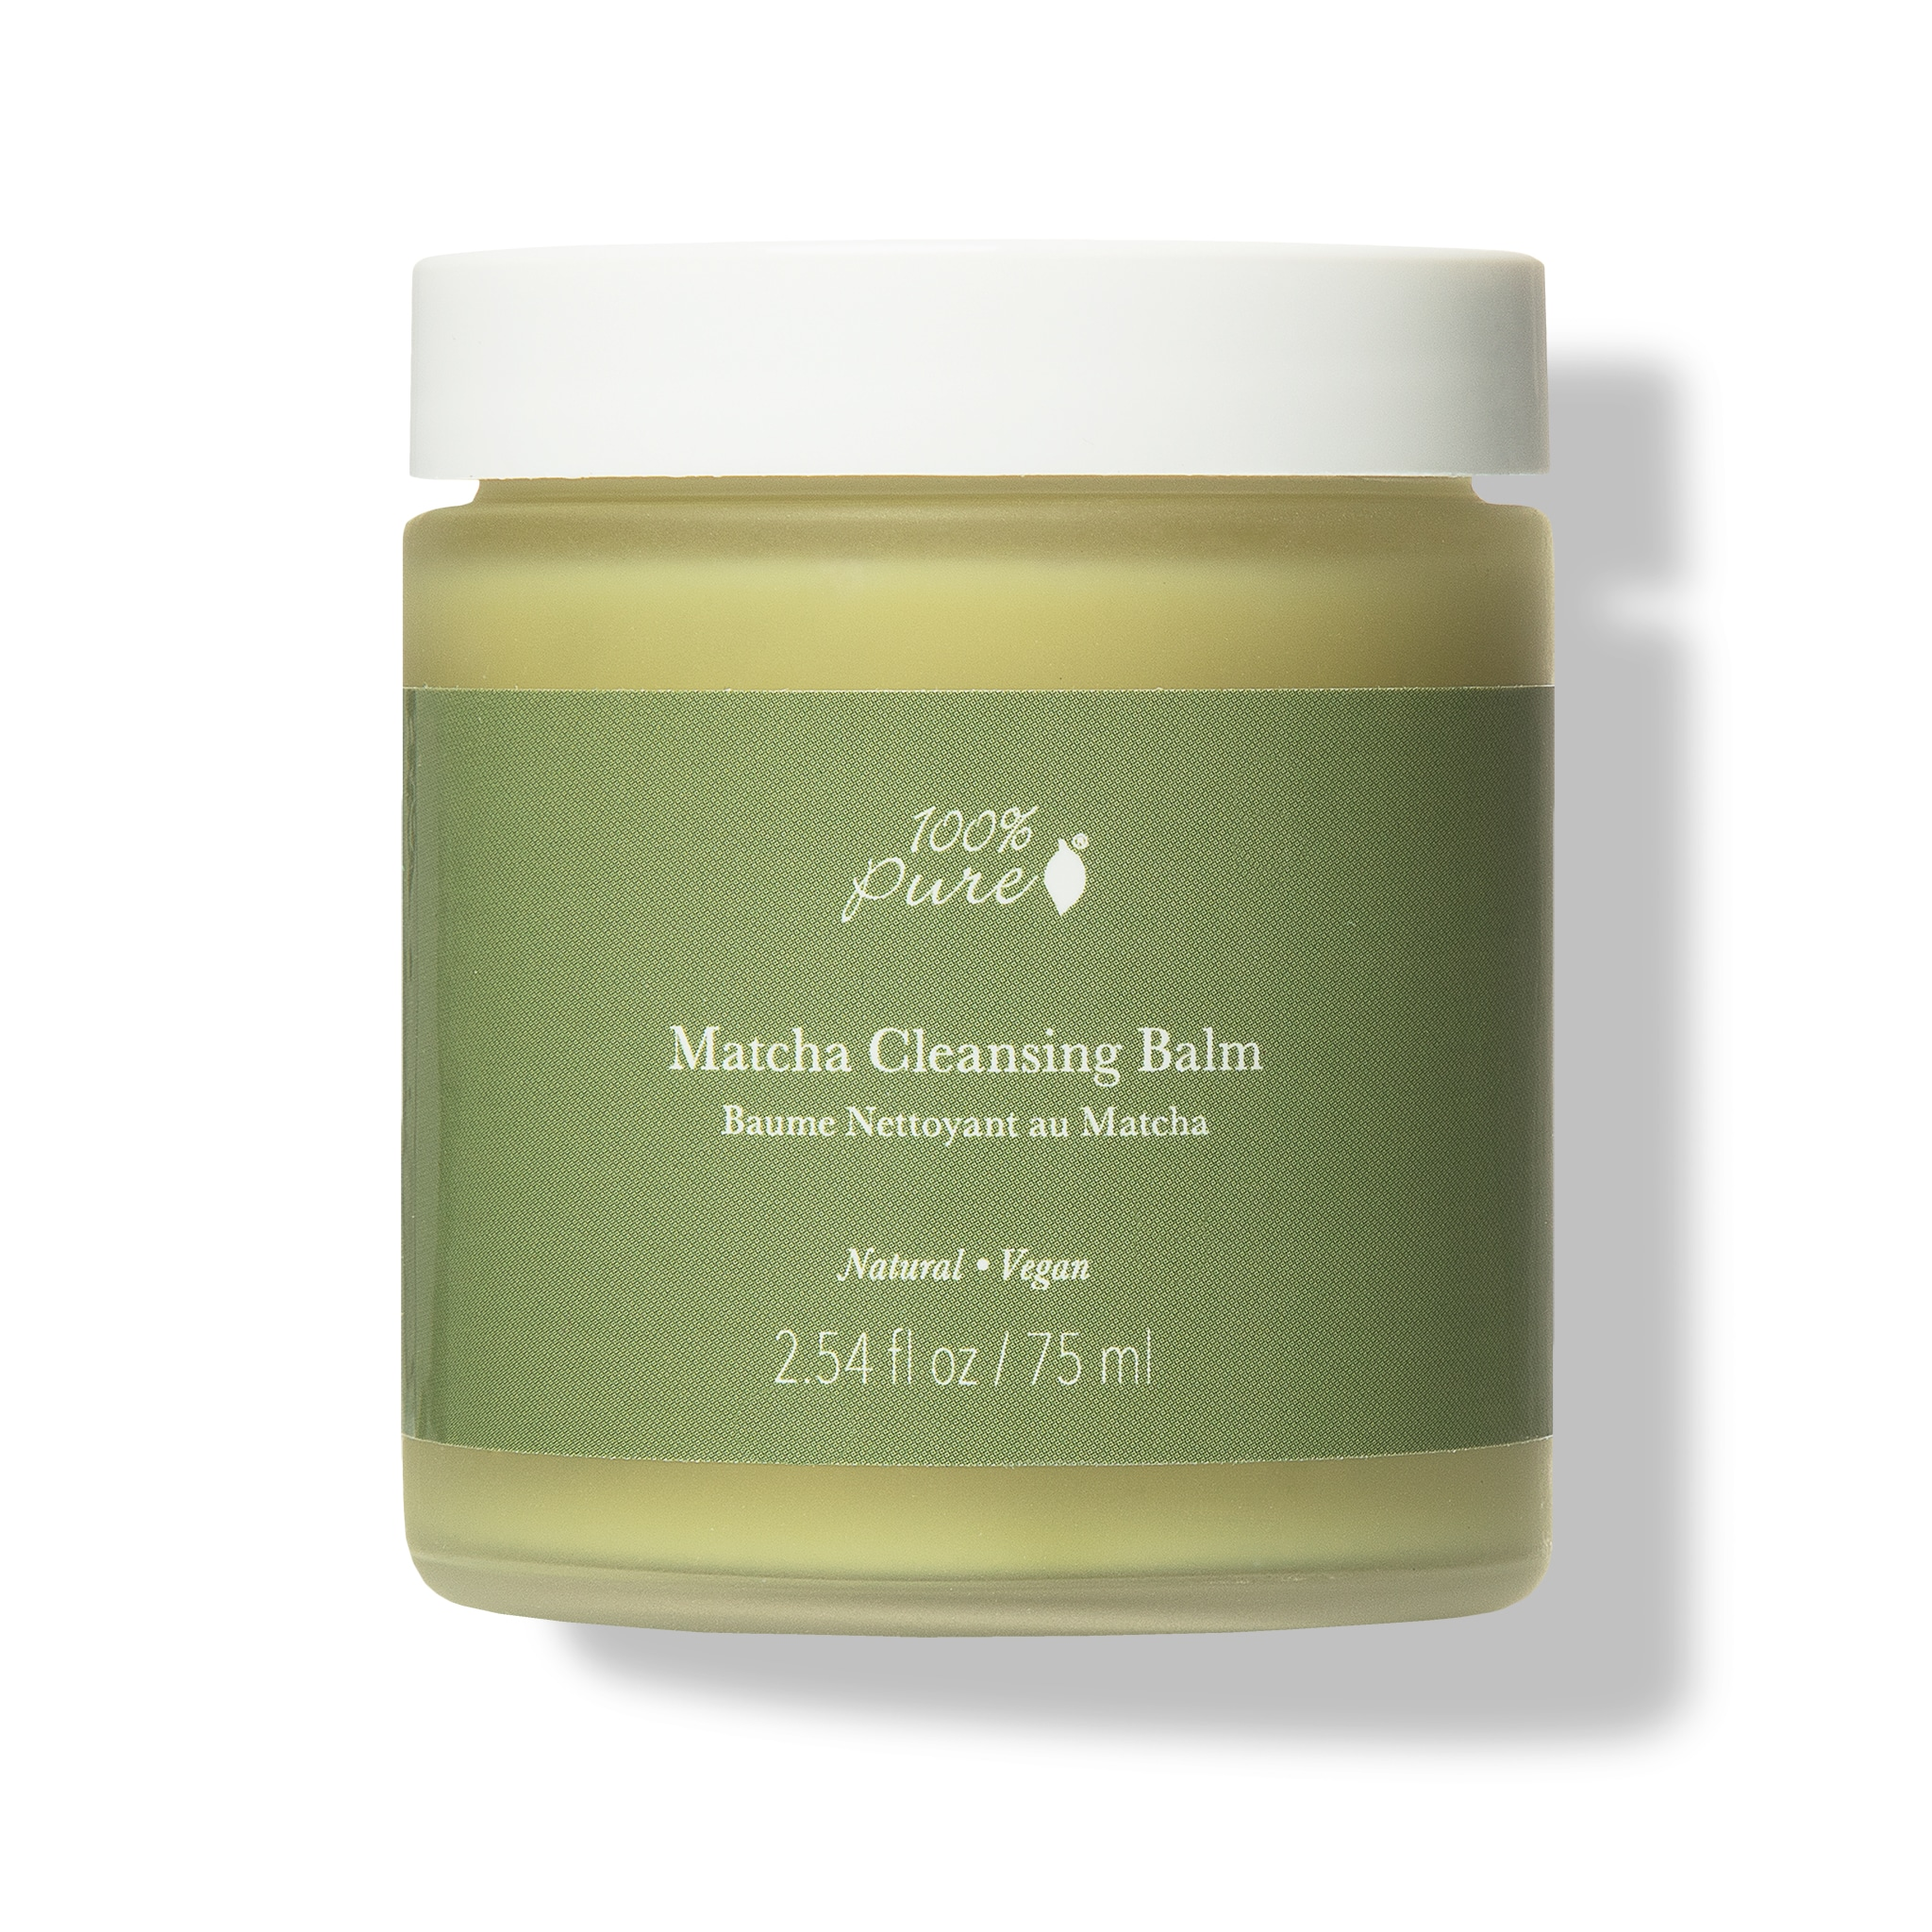 Product Grid - Matcha Cleansing Balm